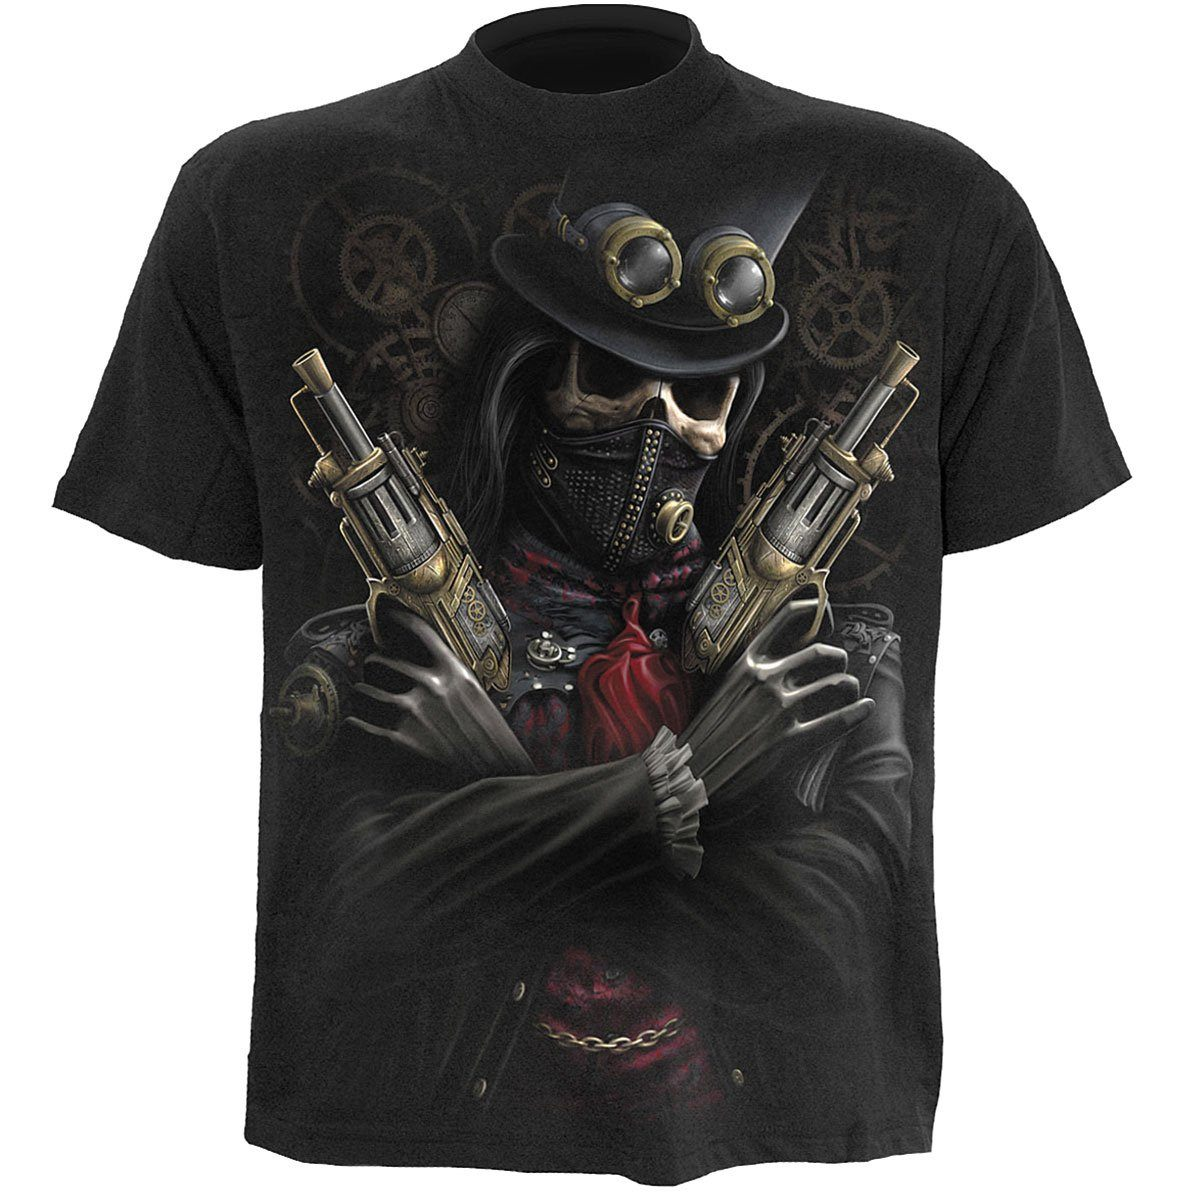 Steampunk Skull Bandit Men's Black T-Shirt